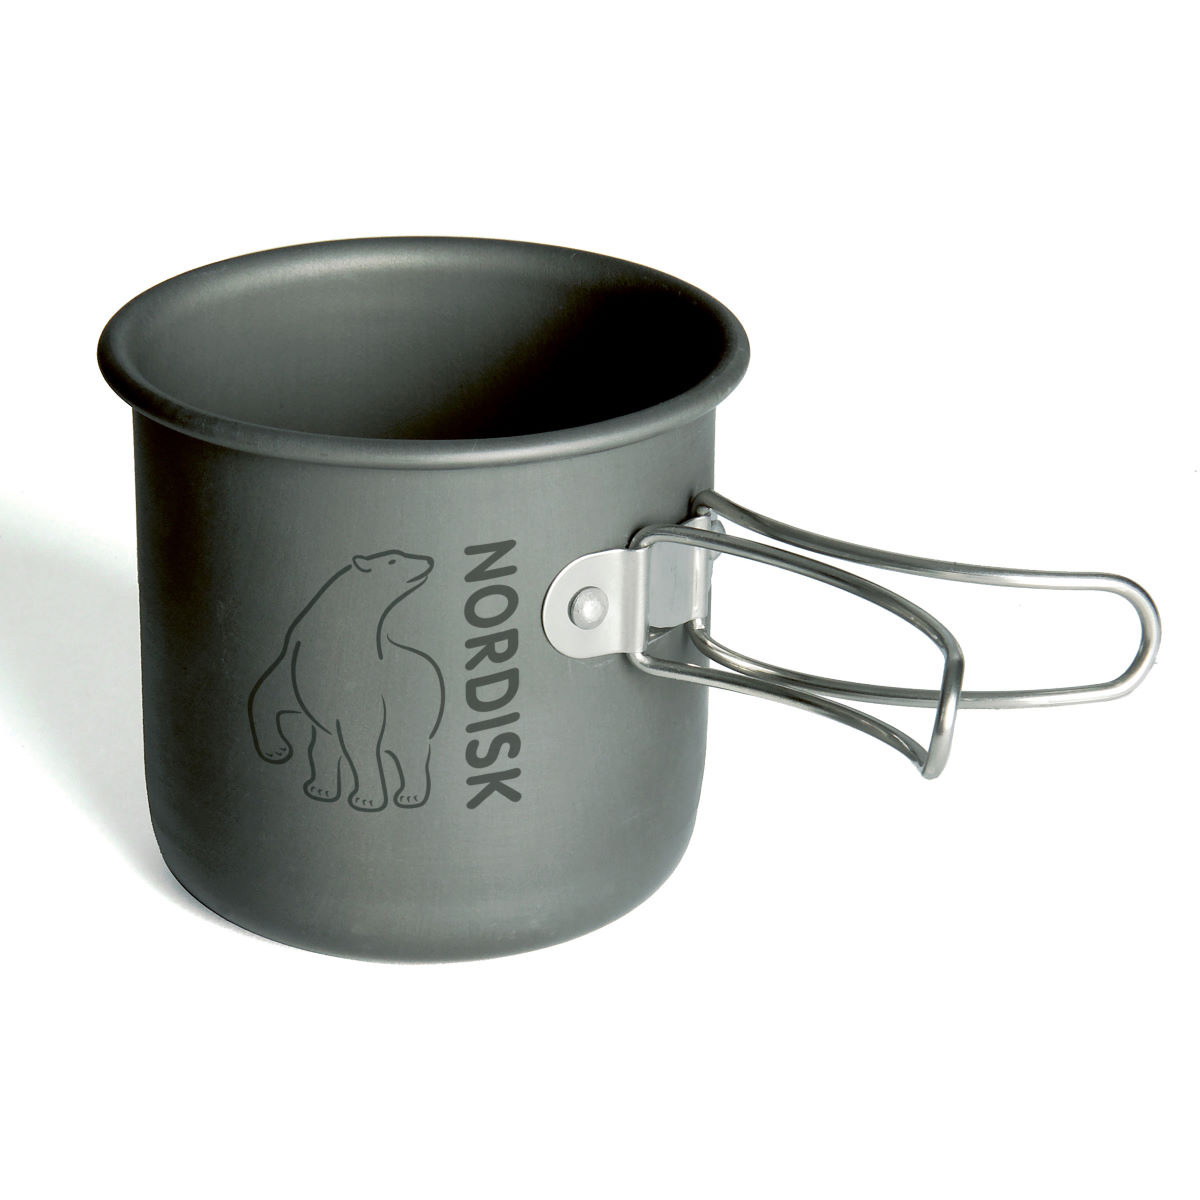 Nordisk Aluminium Mug (200ml)   Kitchen Equipment